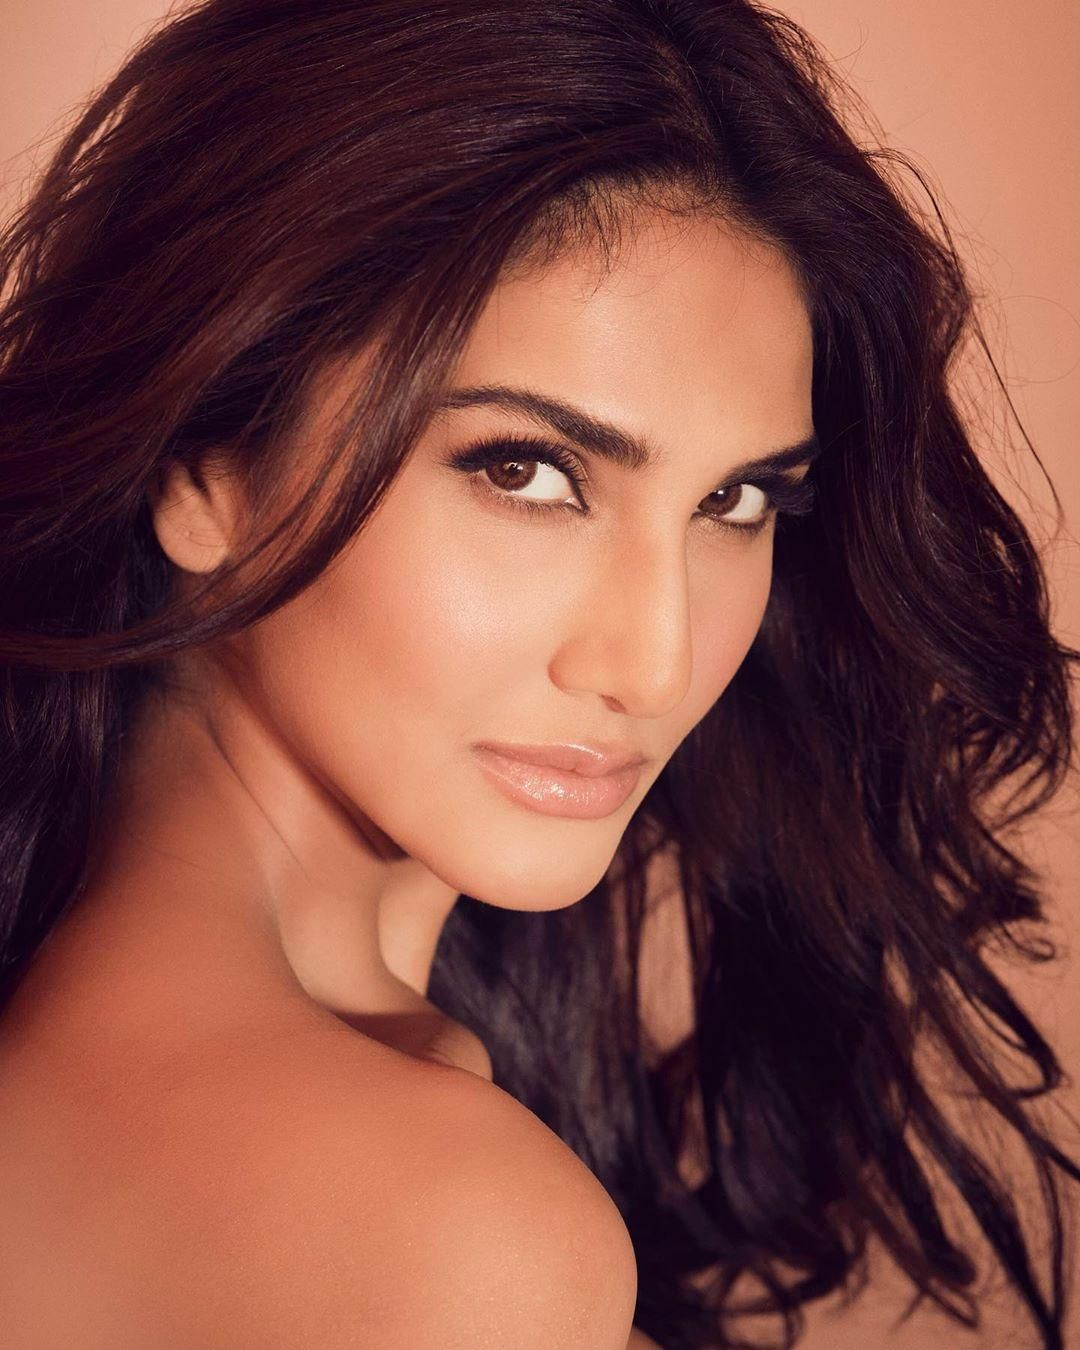 Vaani Kapoor HD Wallpapers (Desktop Background / Android / iPhone) (1080p, 4k) (102049) - Vaani Kapoor